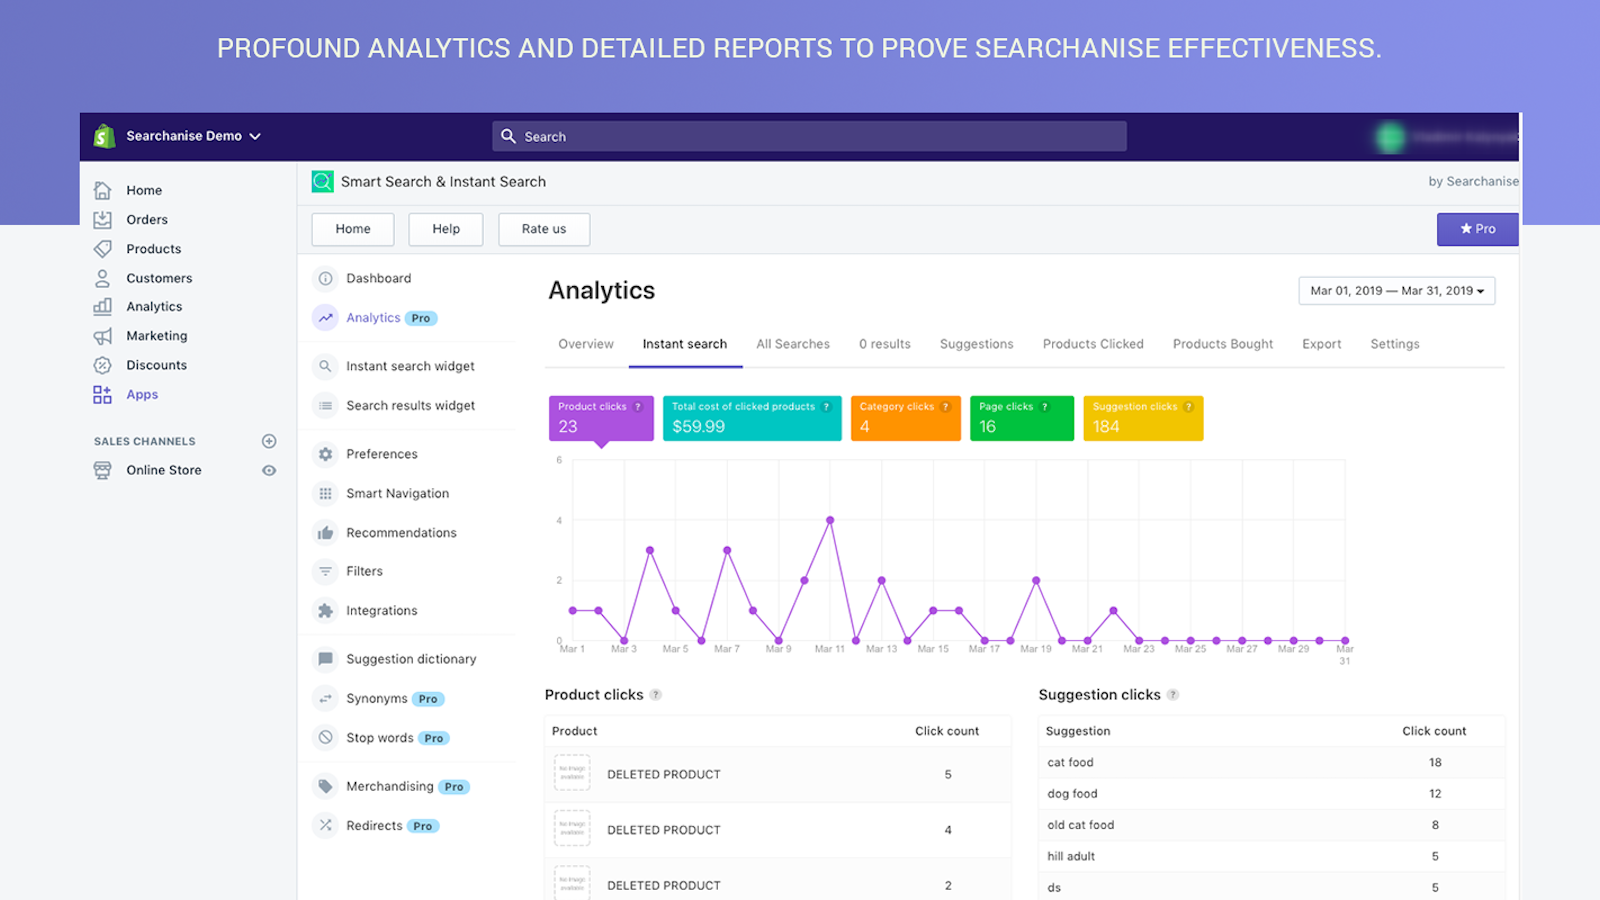 Profound analytics and detailed reports to help sell on Shopify